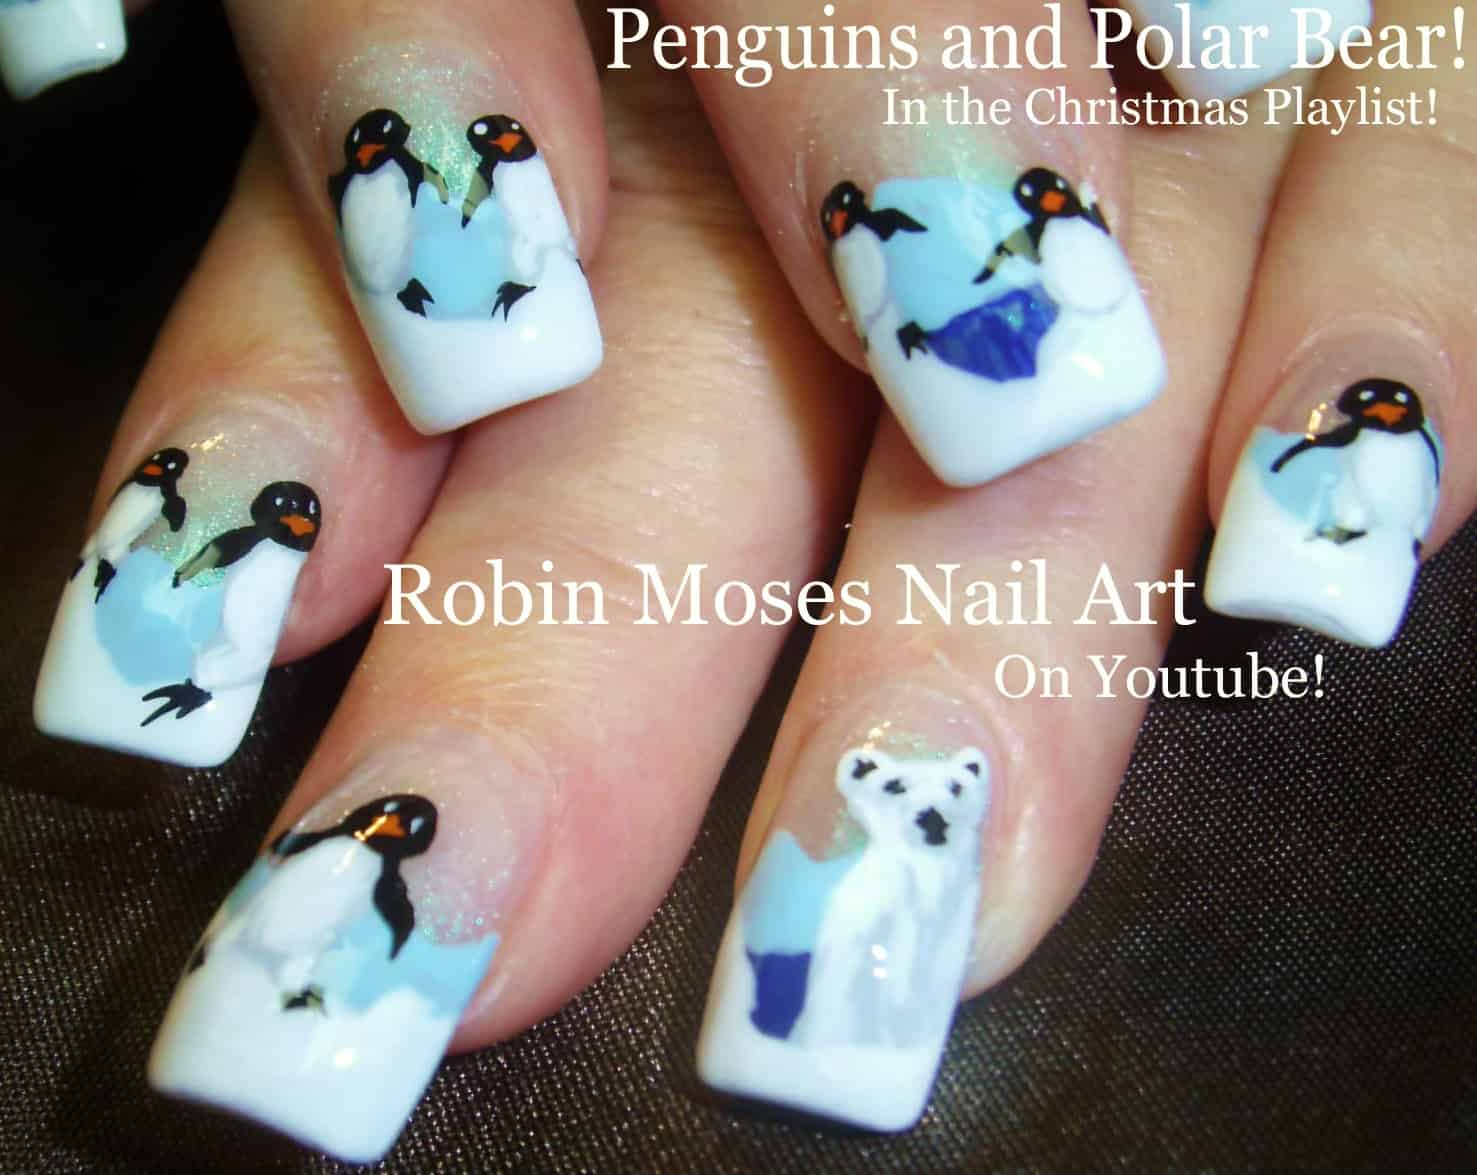 Penguin and polar bear nails